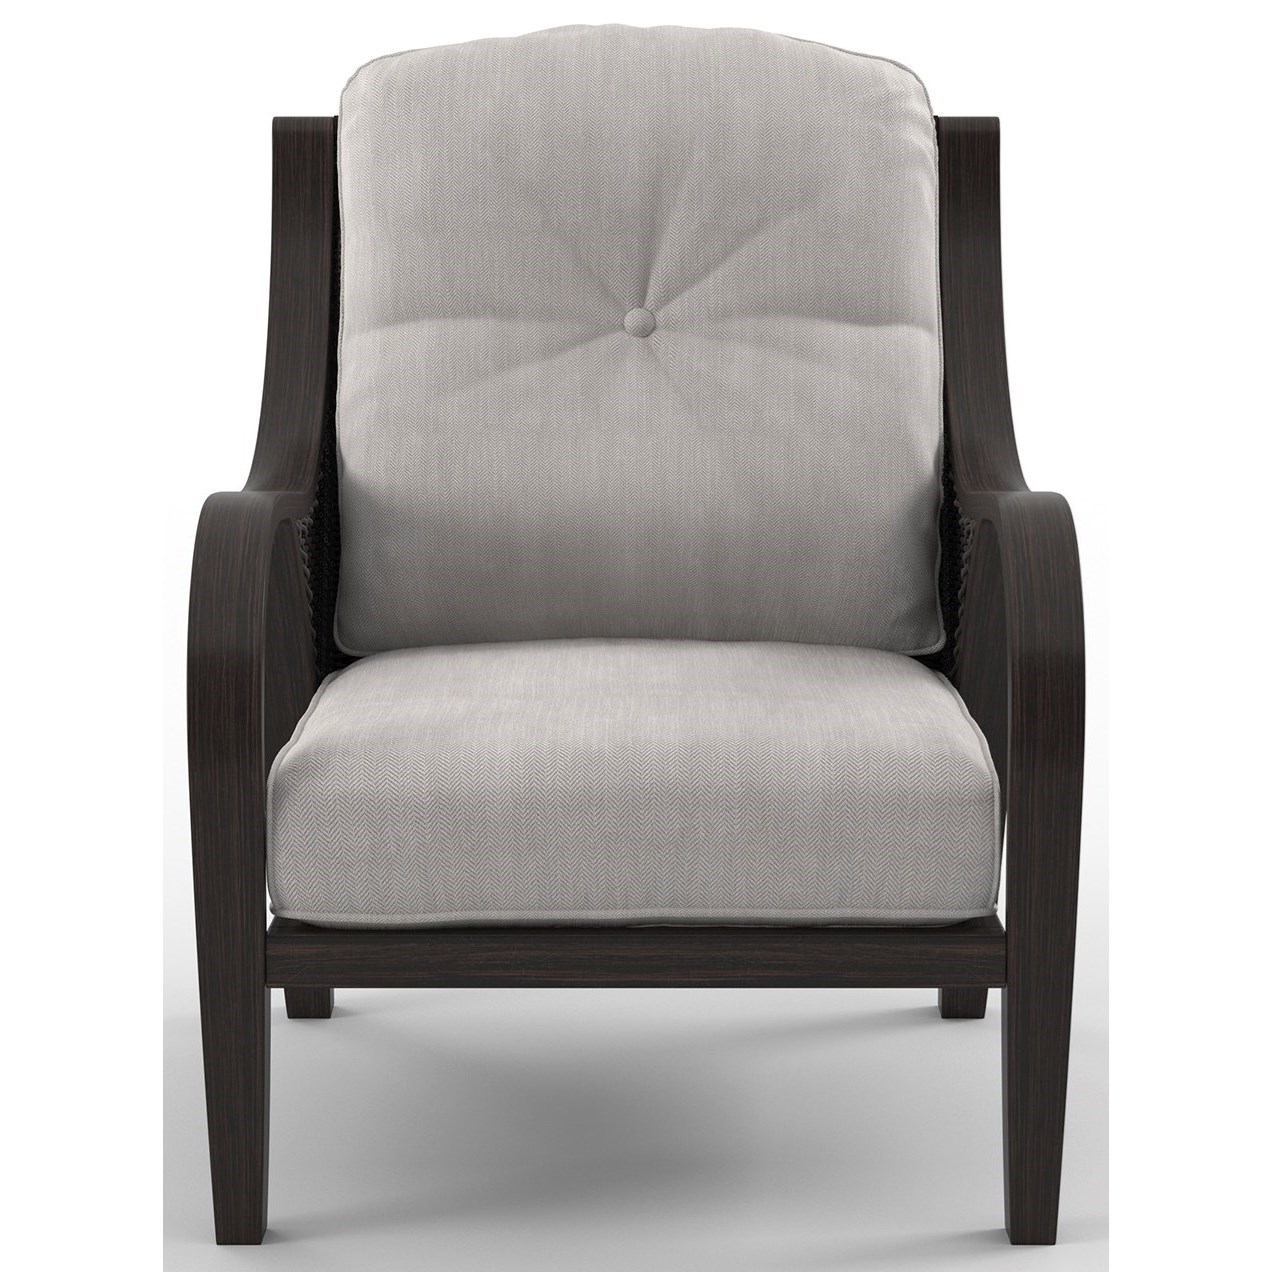 Signature Design by Ashley Marsh Creek Set of 2 Lounge Chairs with Cushion - Item Number: P775-820